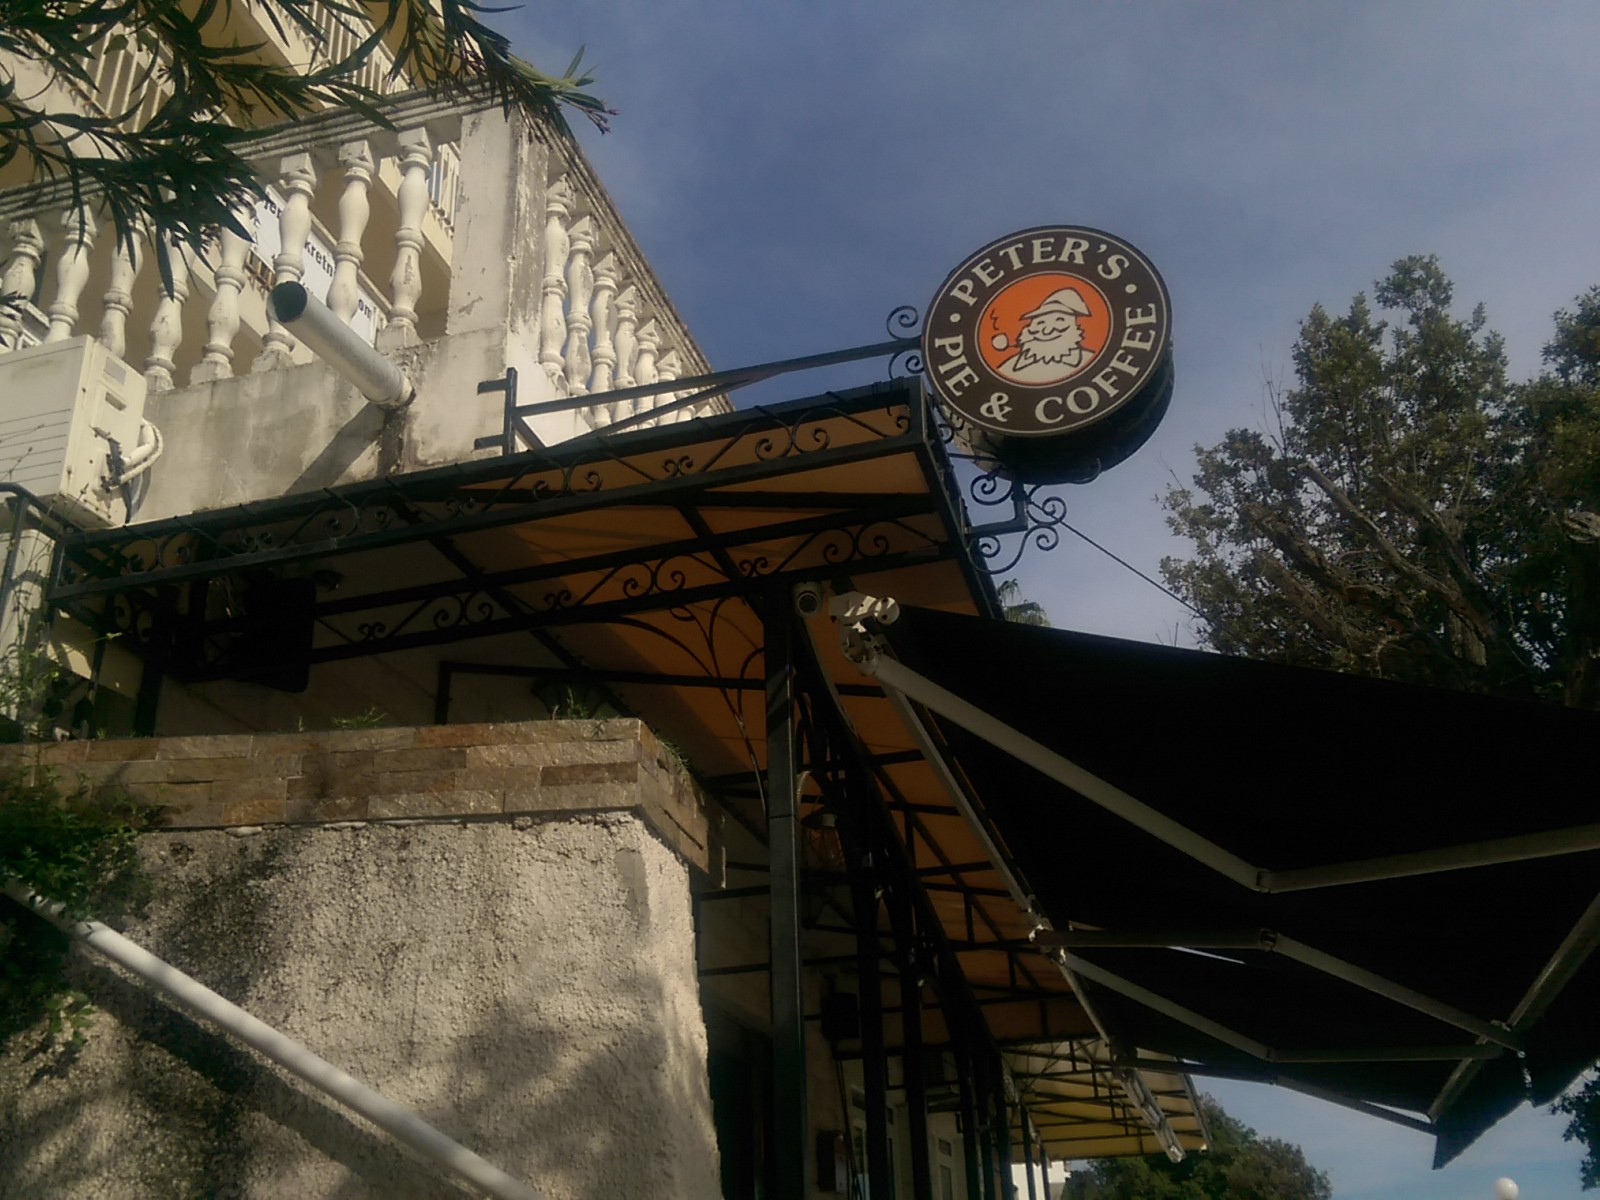 A cafe canopy from the side and below with a round orange sign